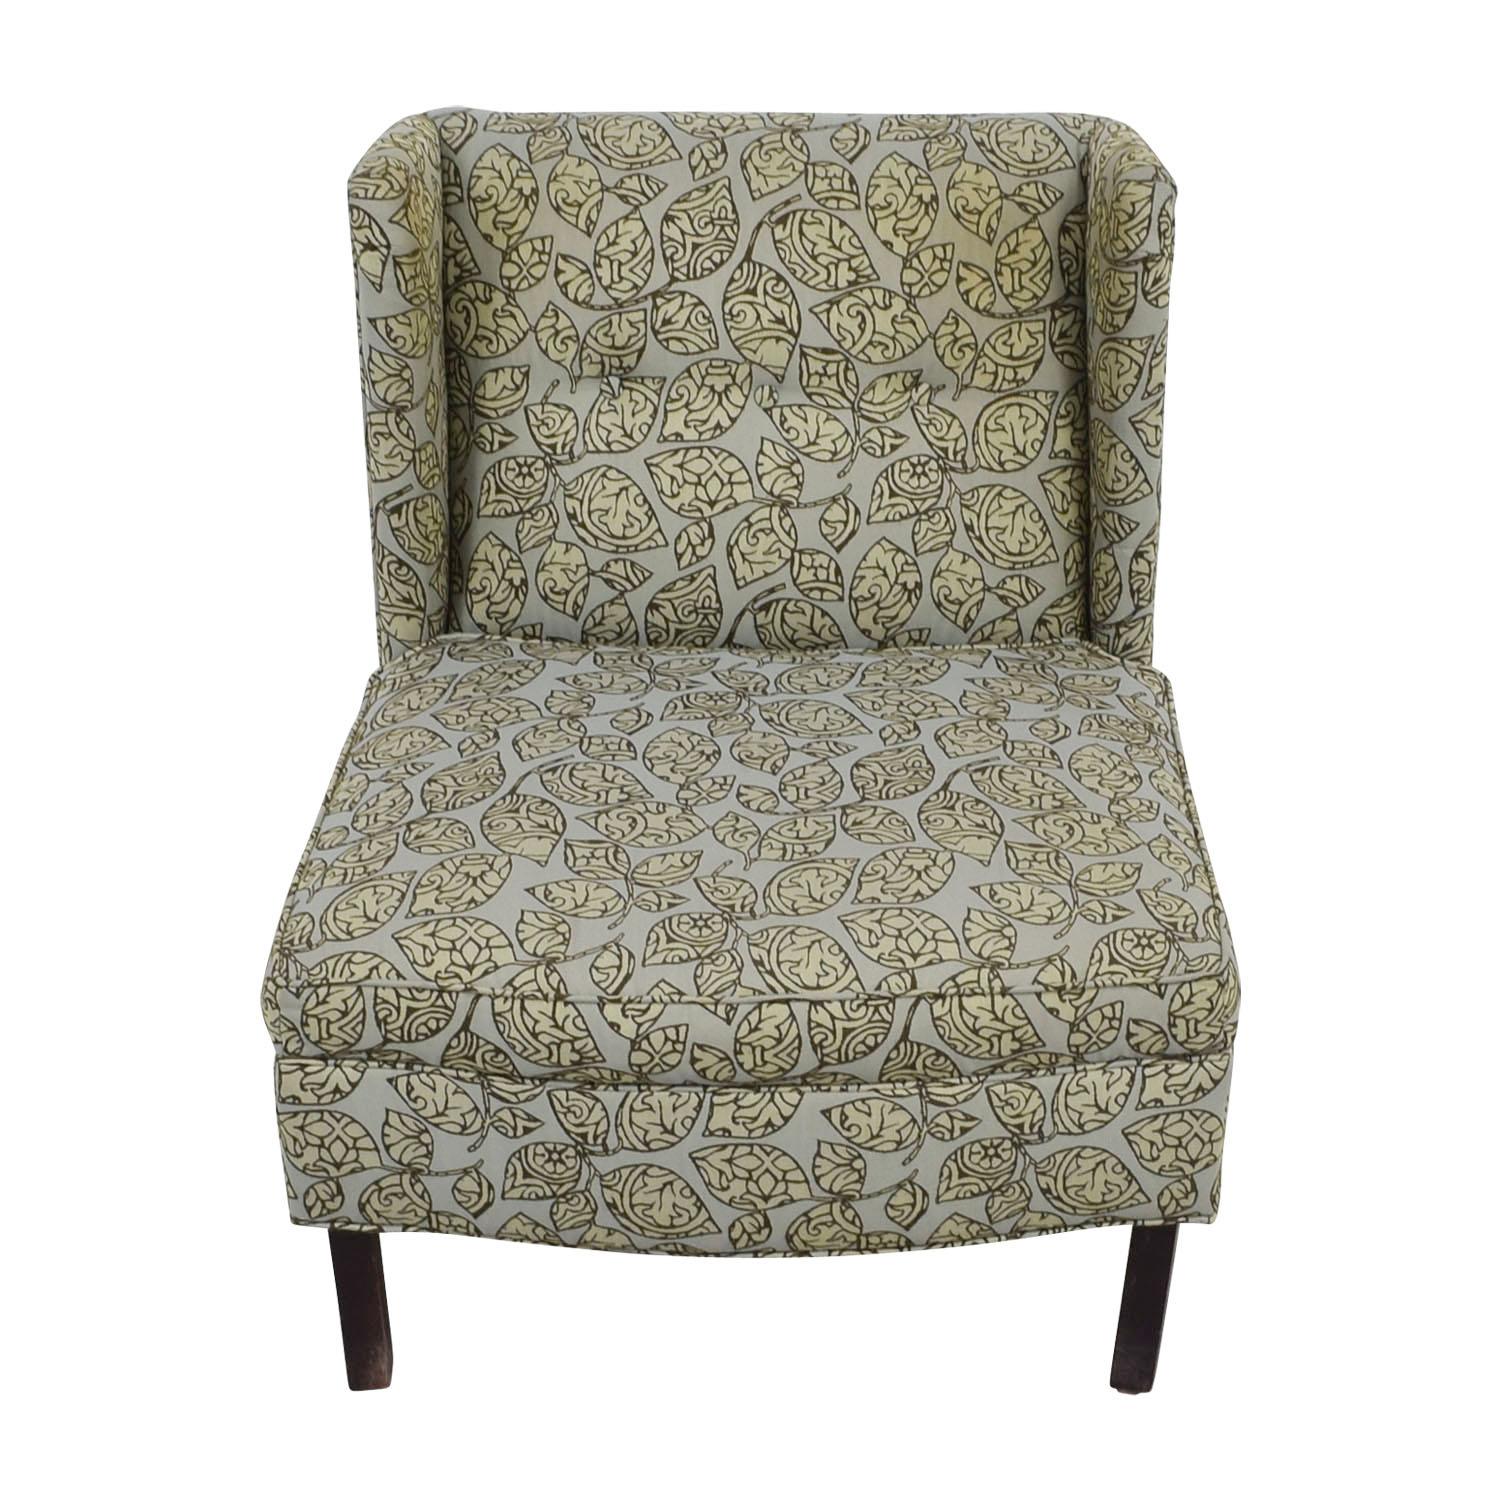 Restoration Hardware Restoration Hardware Green and Grey Lounge Accent Chair used